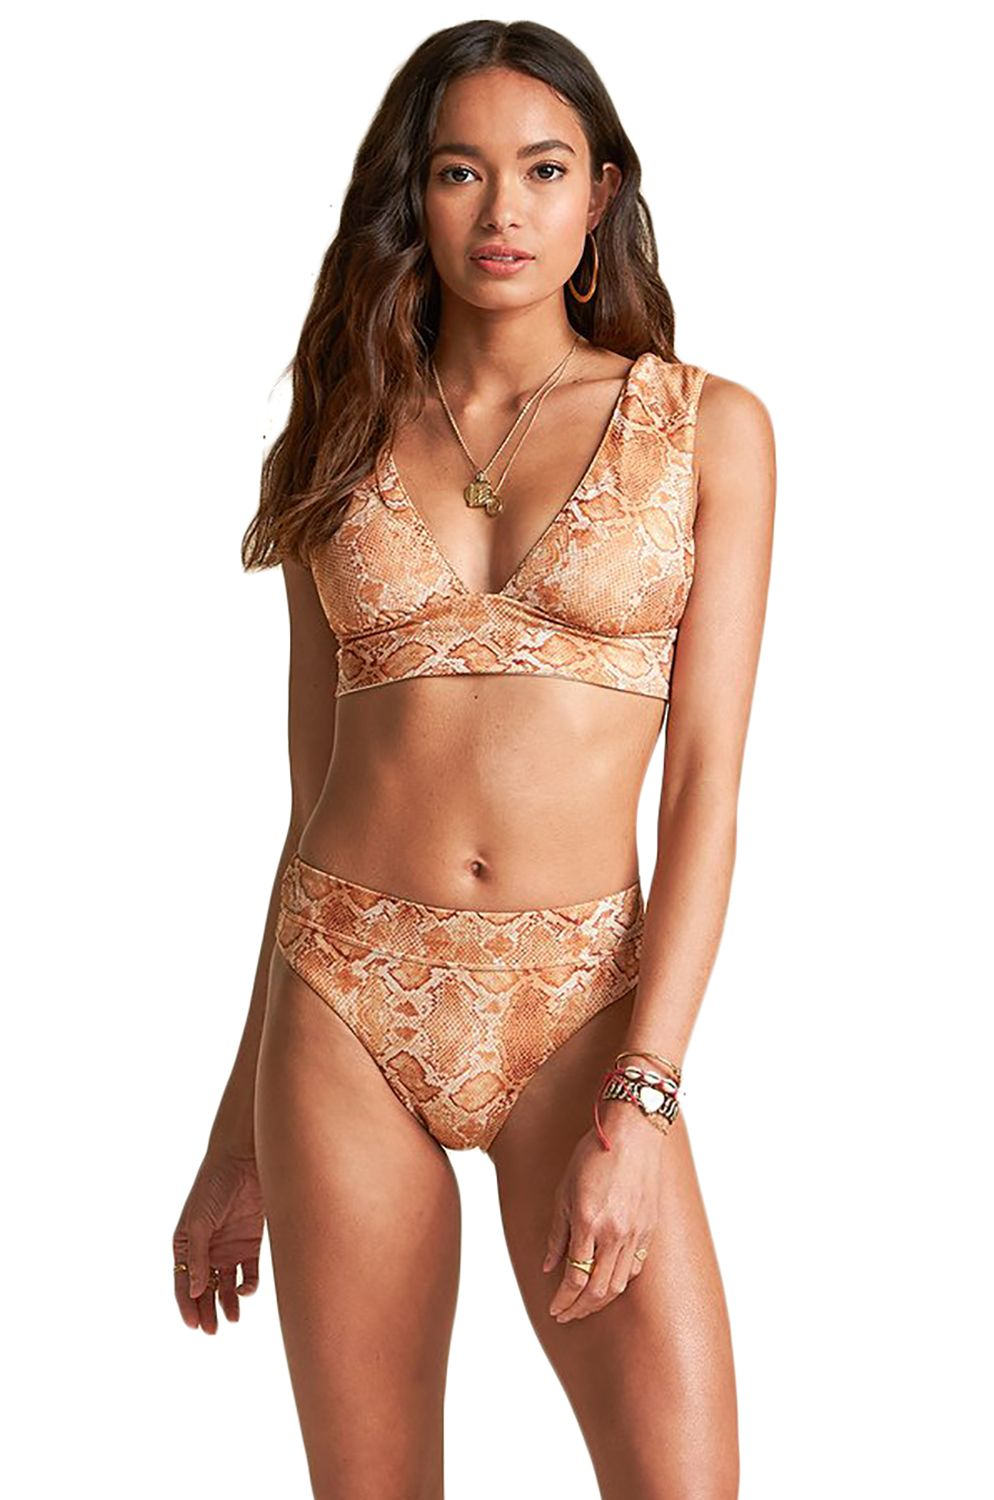 Billabong Bikini Top OVER THE SUN PLUNGE SINCERELY JULES Multi